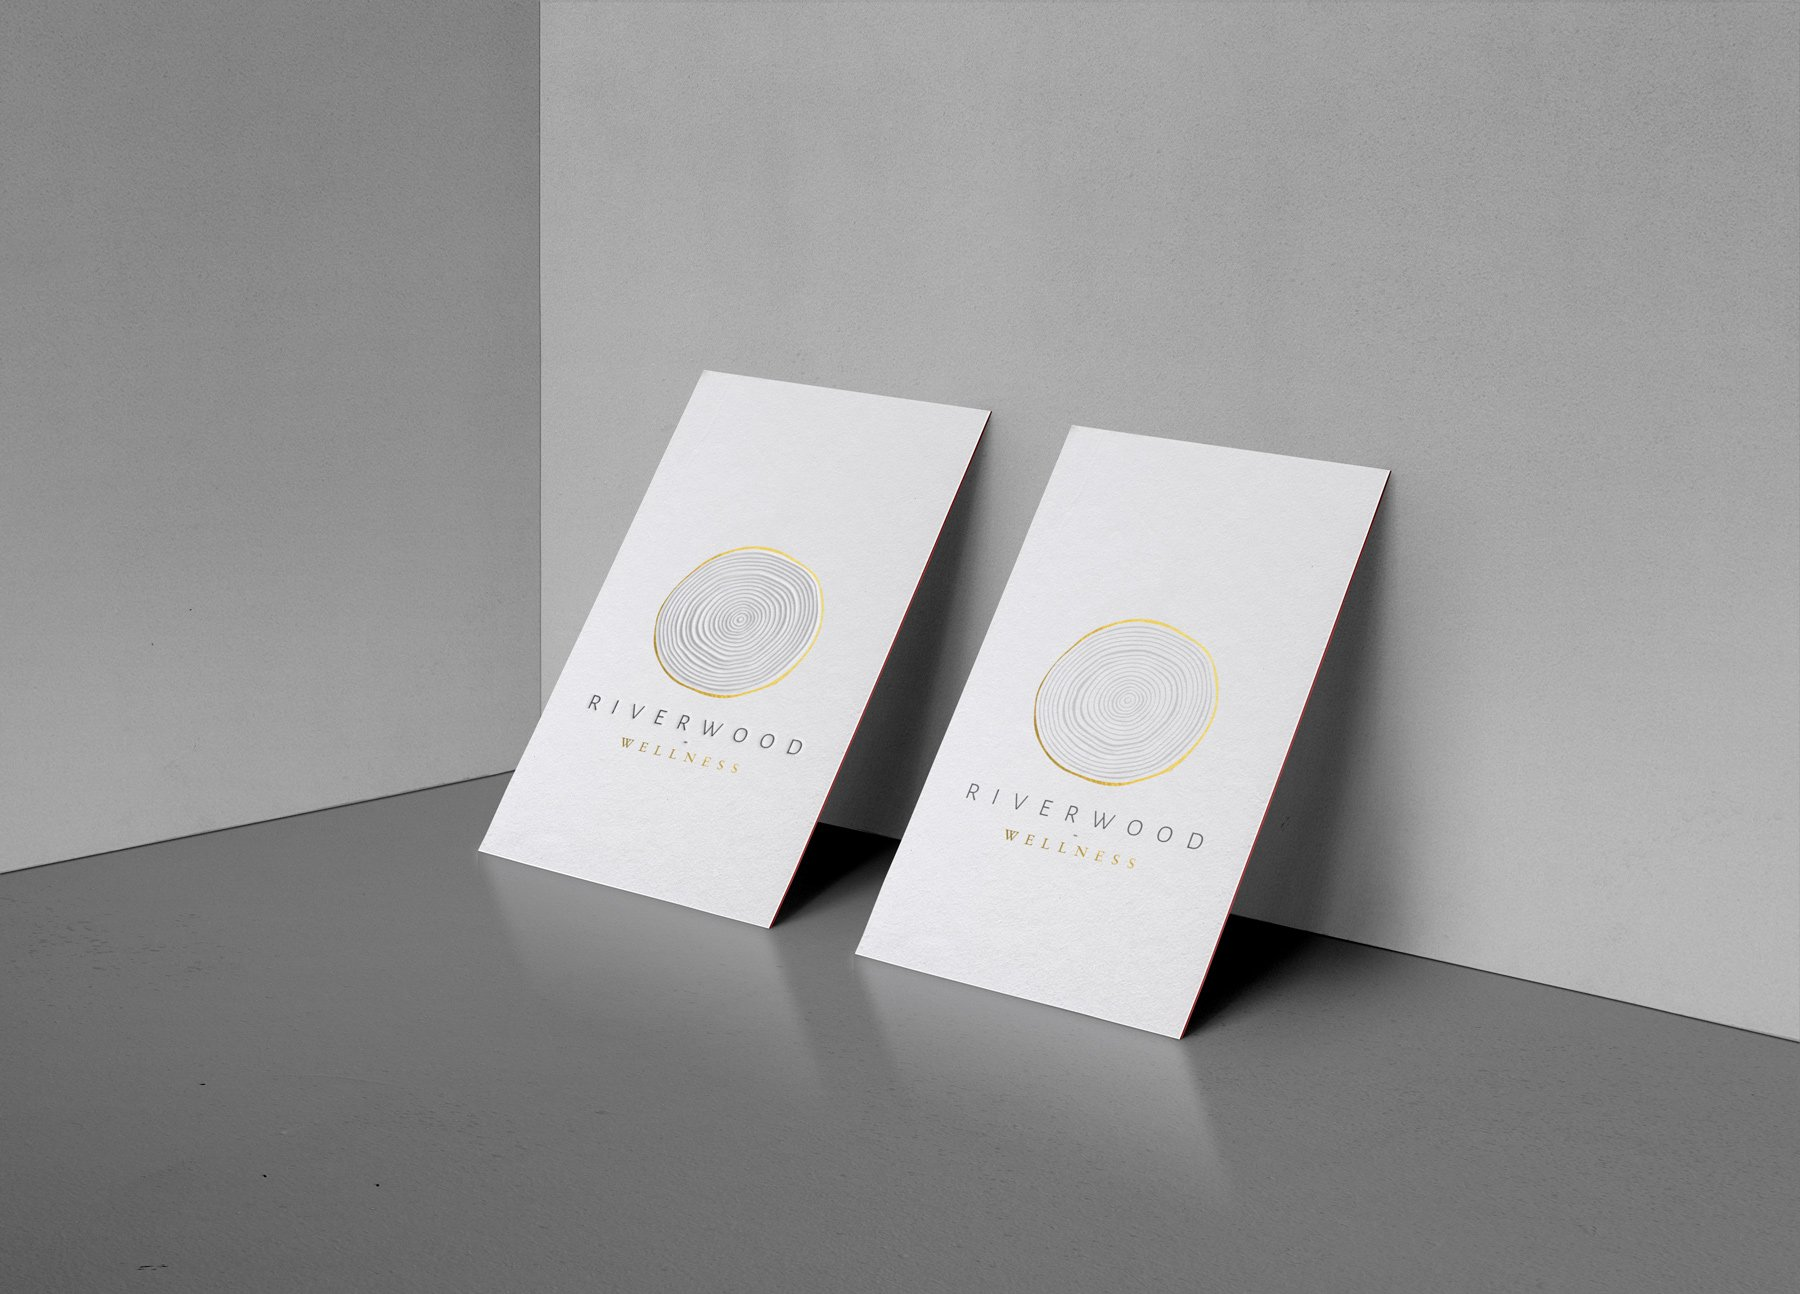 logo and business card design wexford. Pixelpod graphic design and branding in wexford.